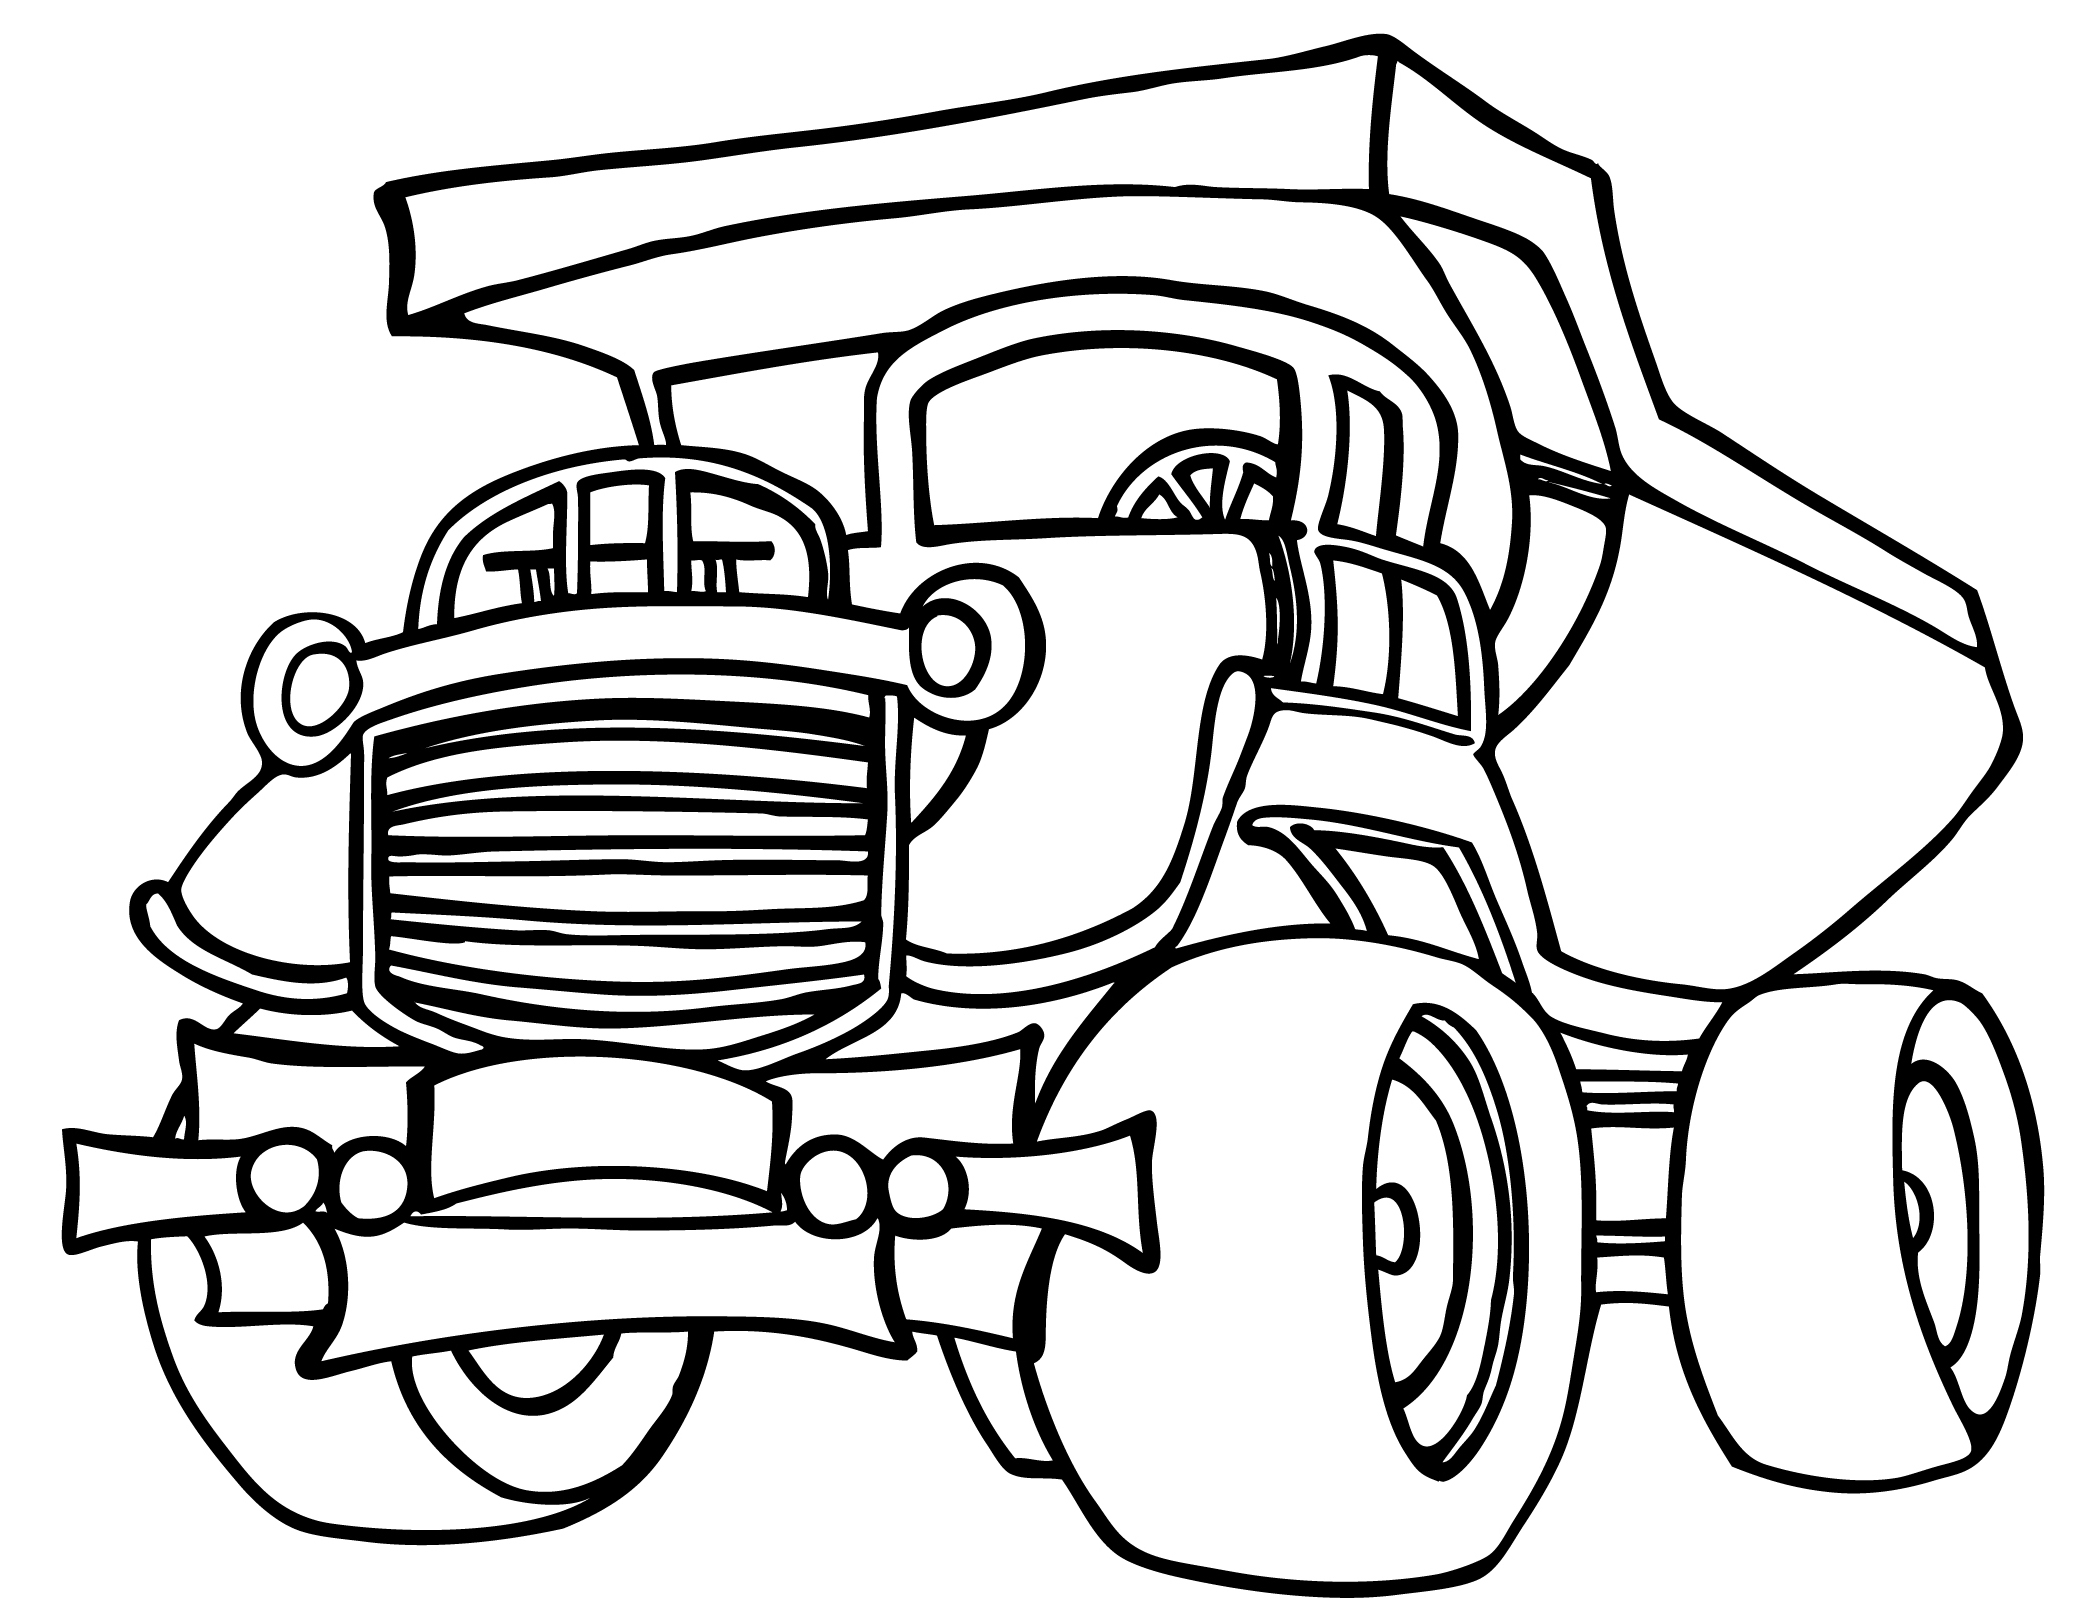 Printable Dump Truck Coloring Pages Coloring Me Construction Truck Coloring Pages